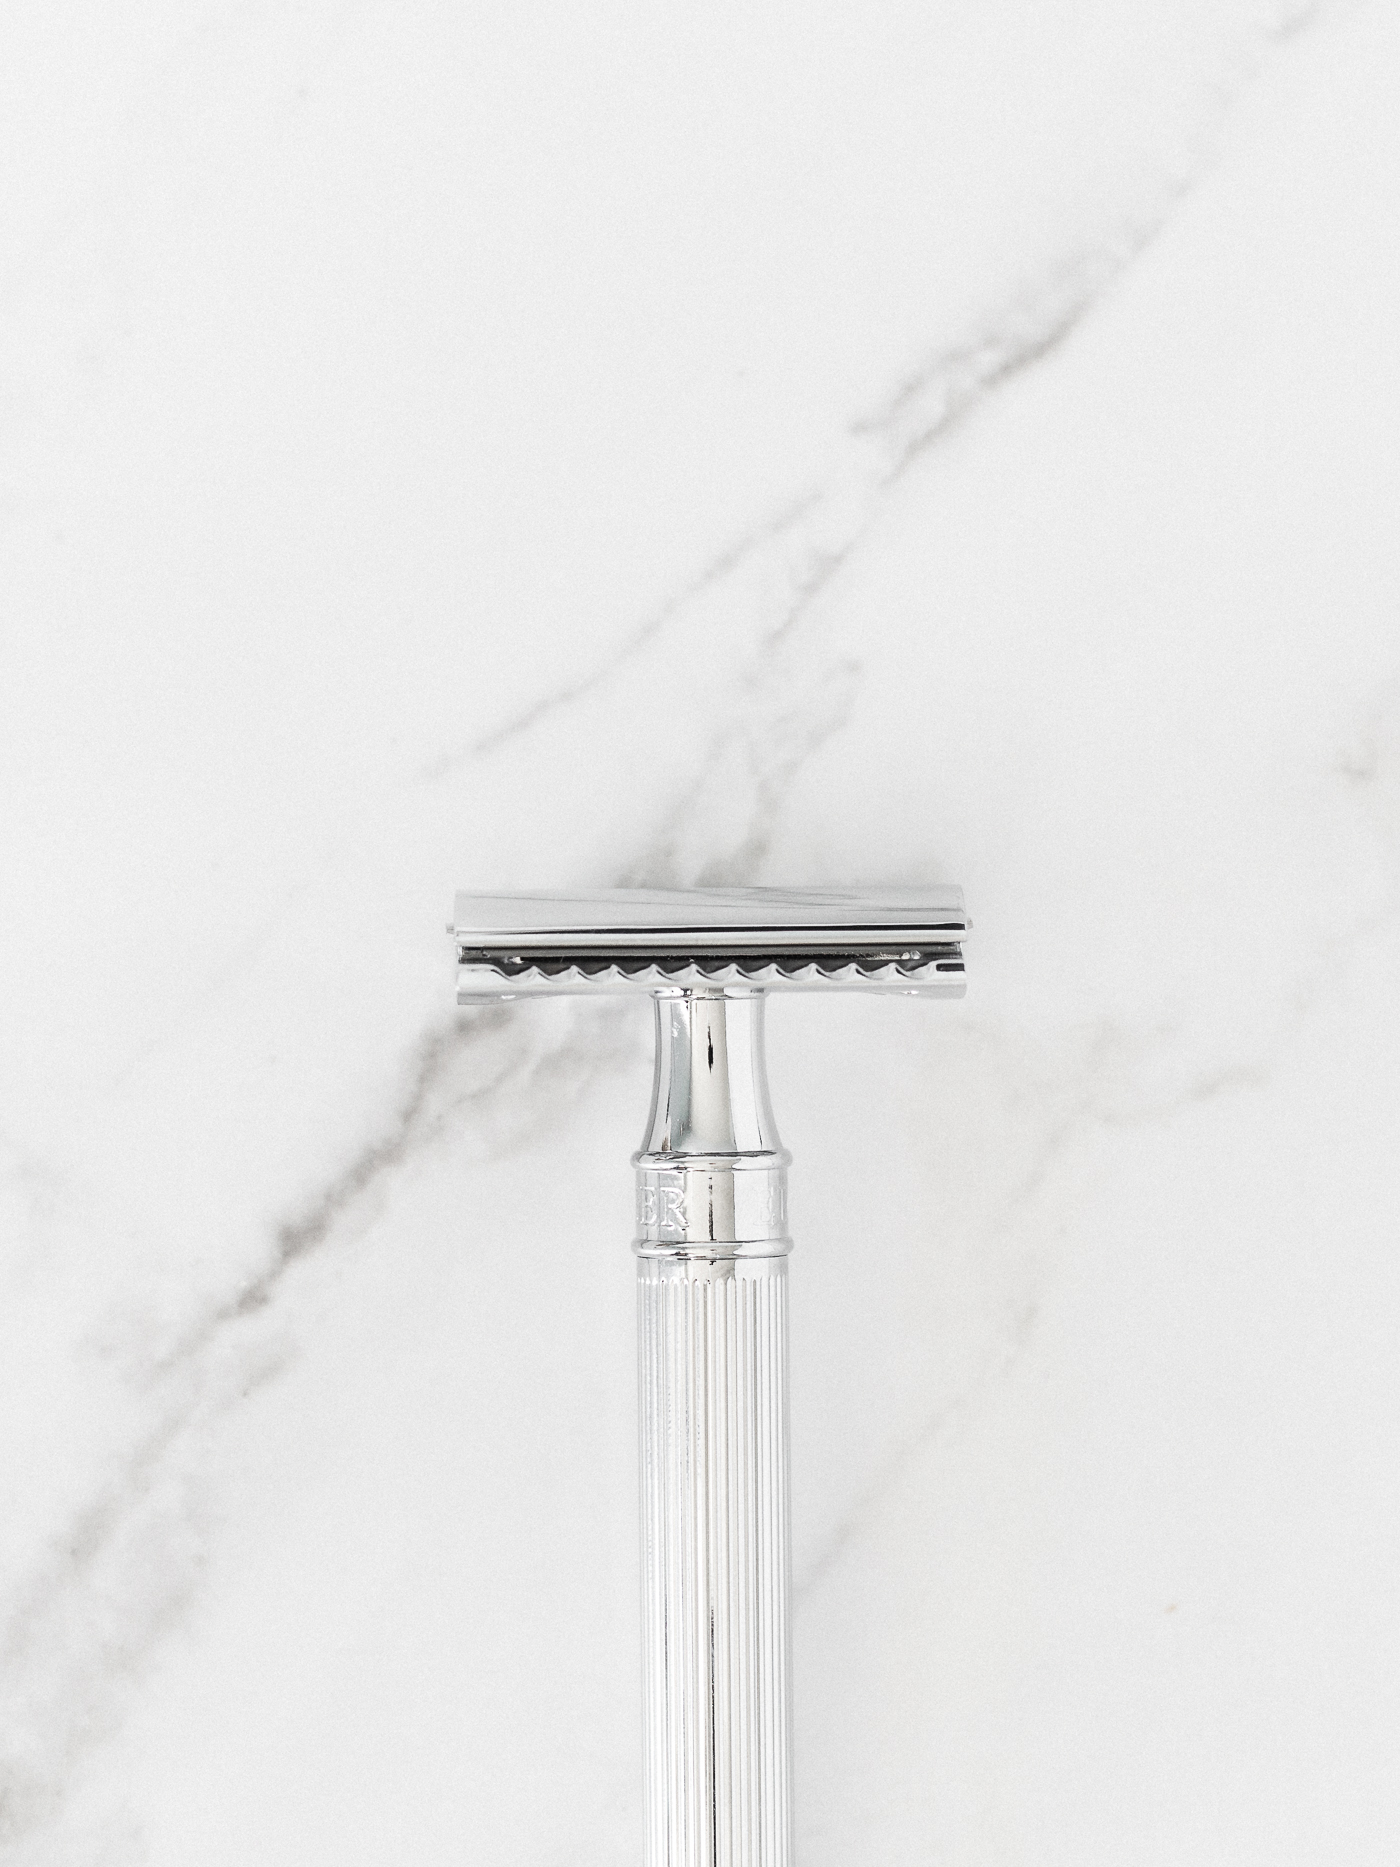 Voyage + Heart - Product Photography for Conscious Brands - Edwin Jagger Safety Razor - E Commerce Photographers for Sustainable Brands - Commercial Photographers - Mail In Product Photography